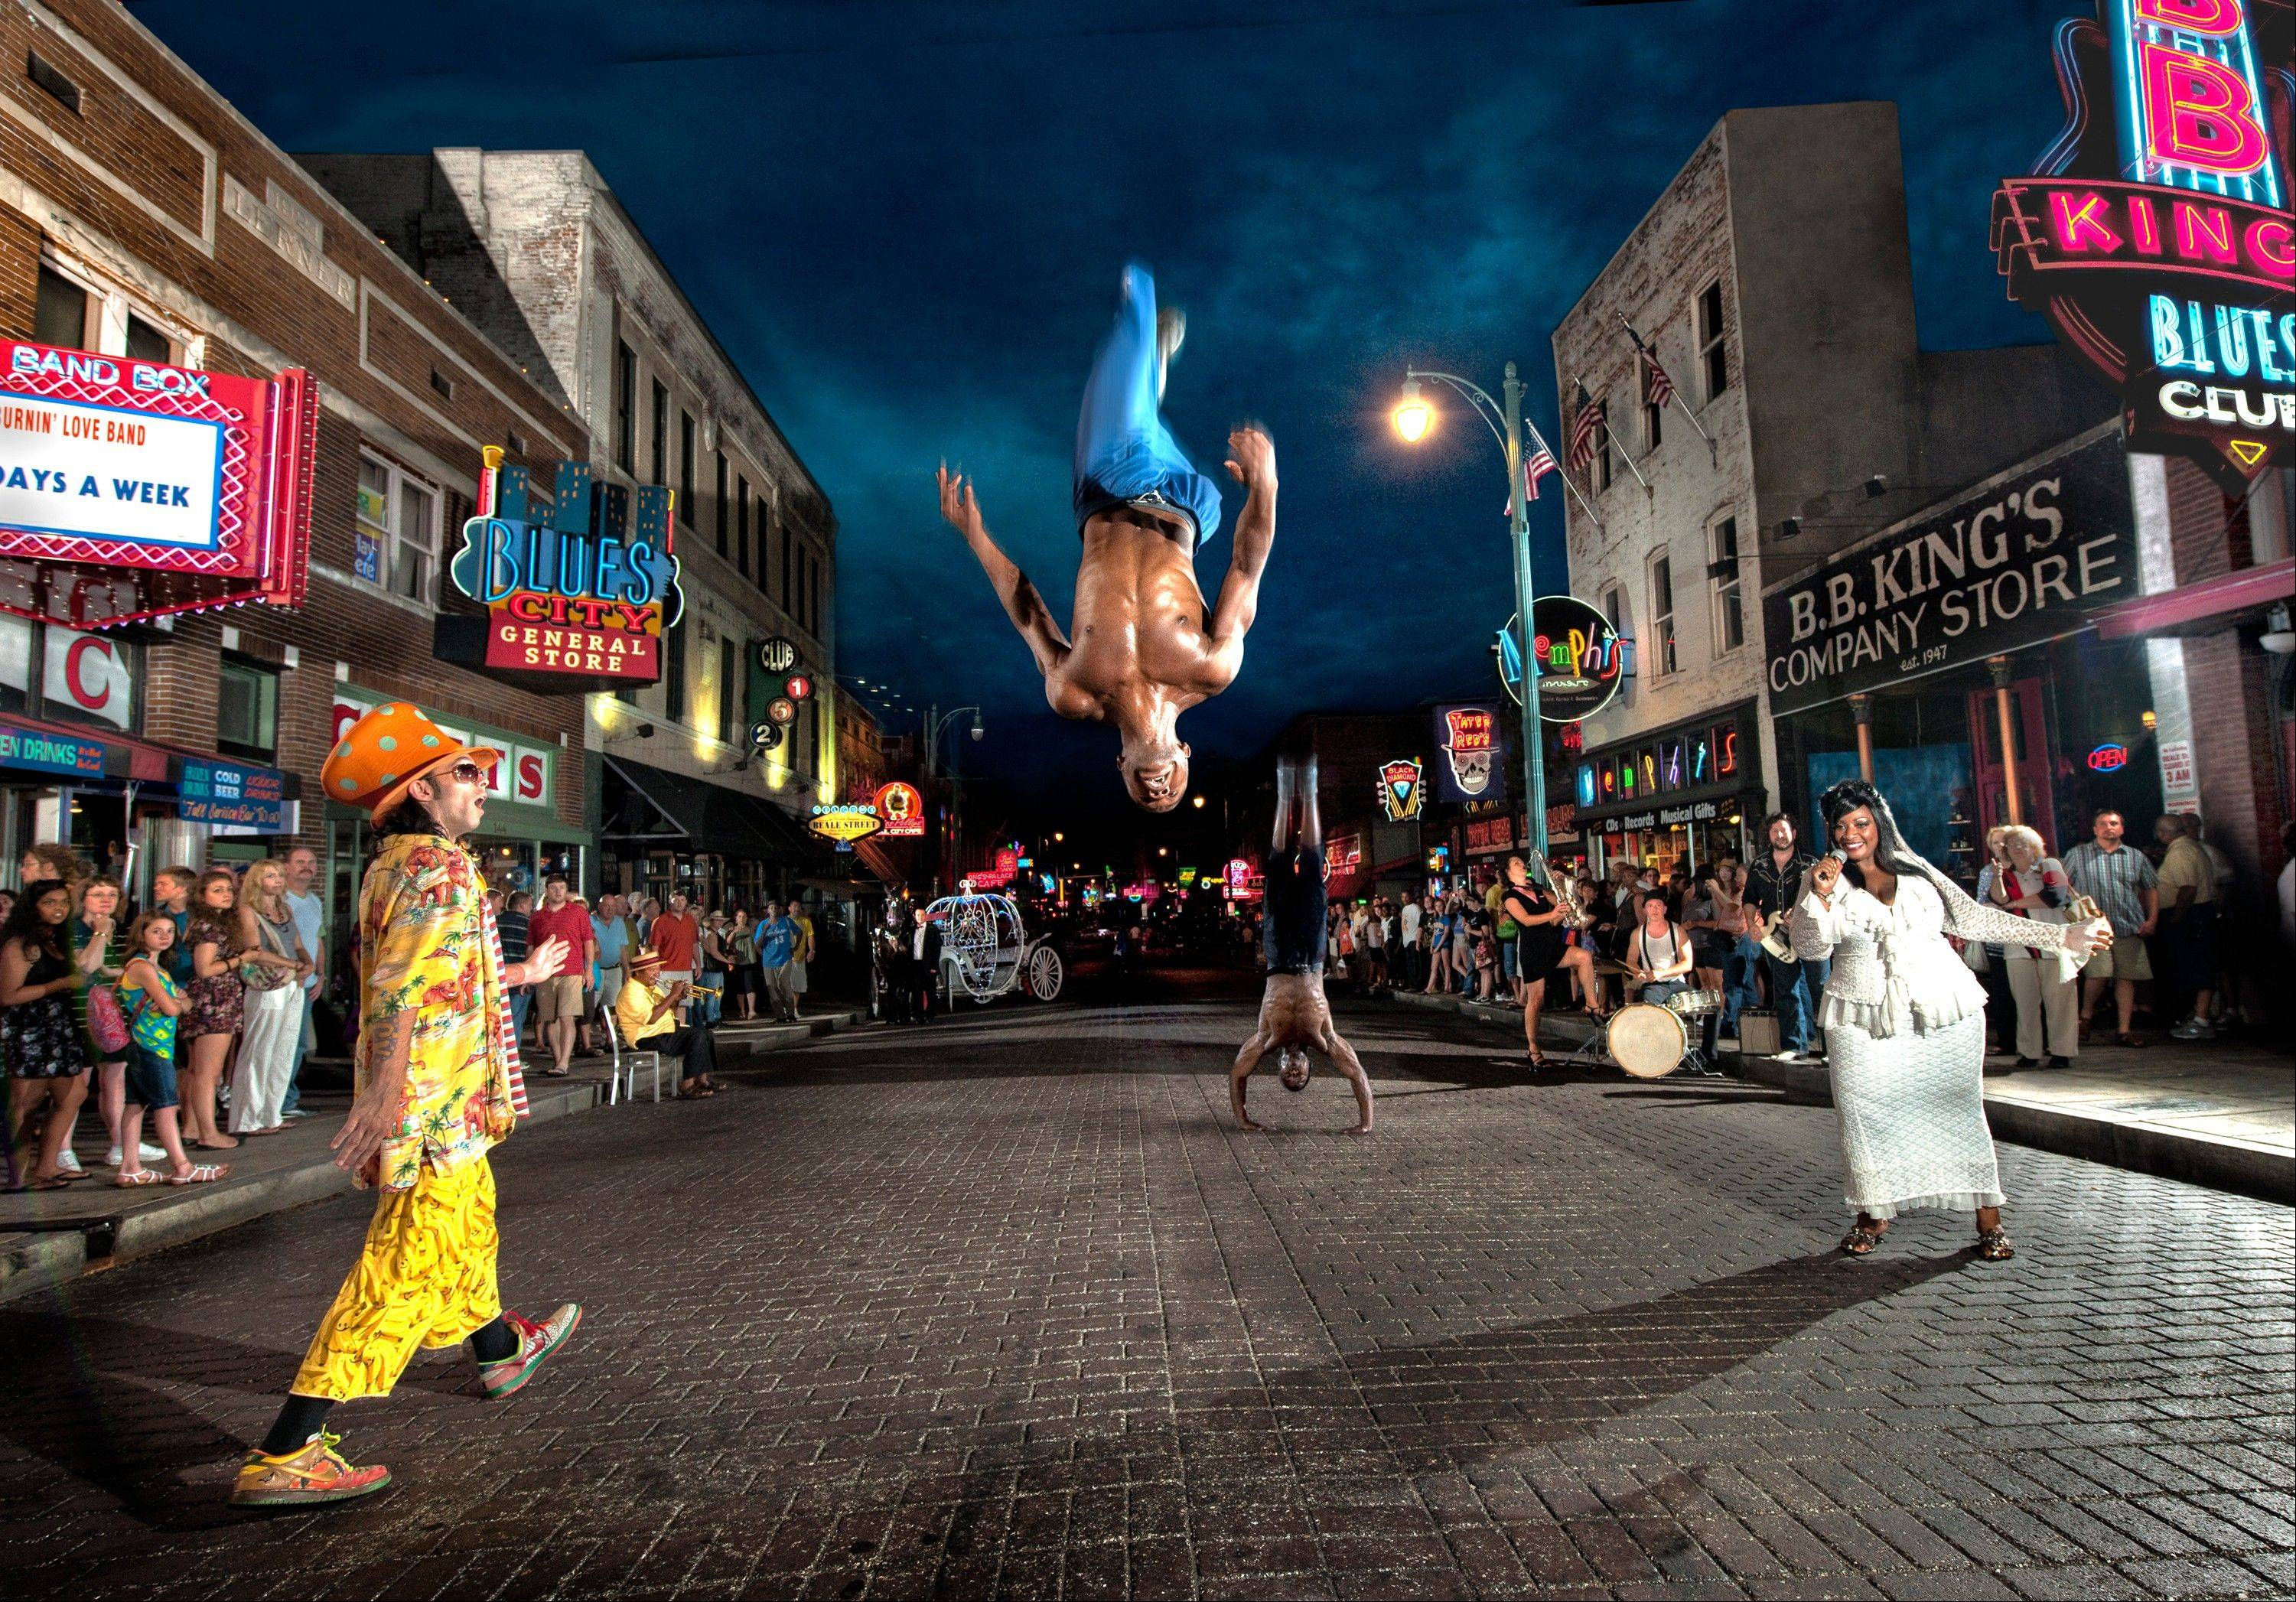 Beale Street is alive day and night with street performers like the Beale Street Flippers.